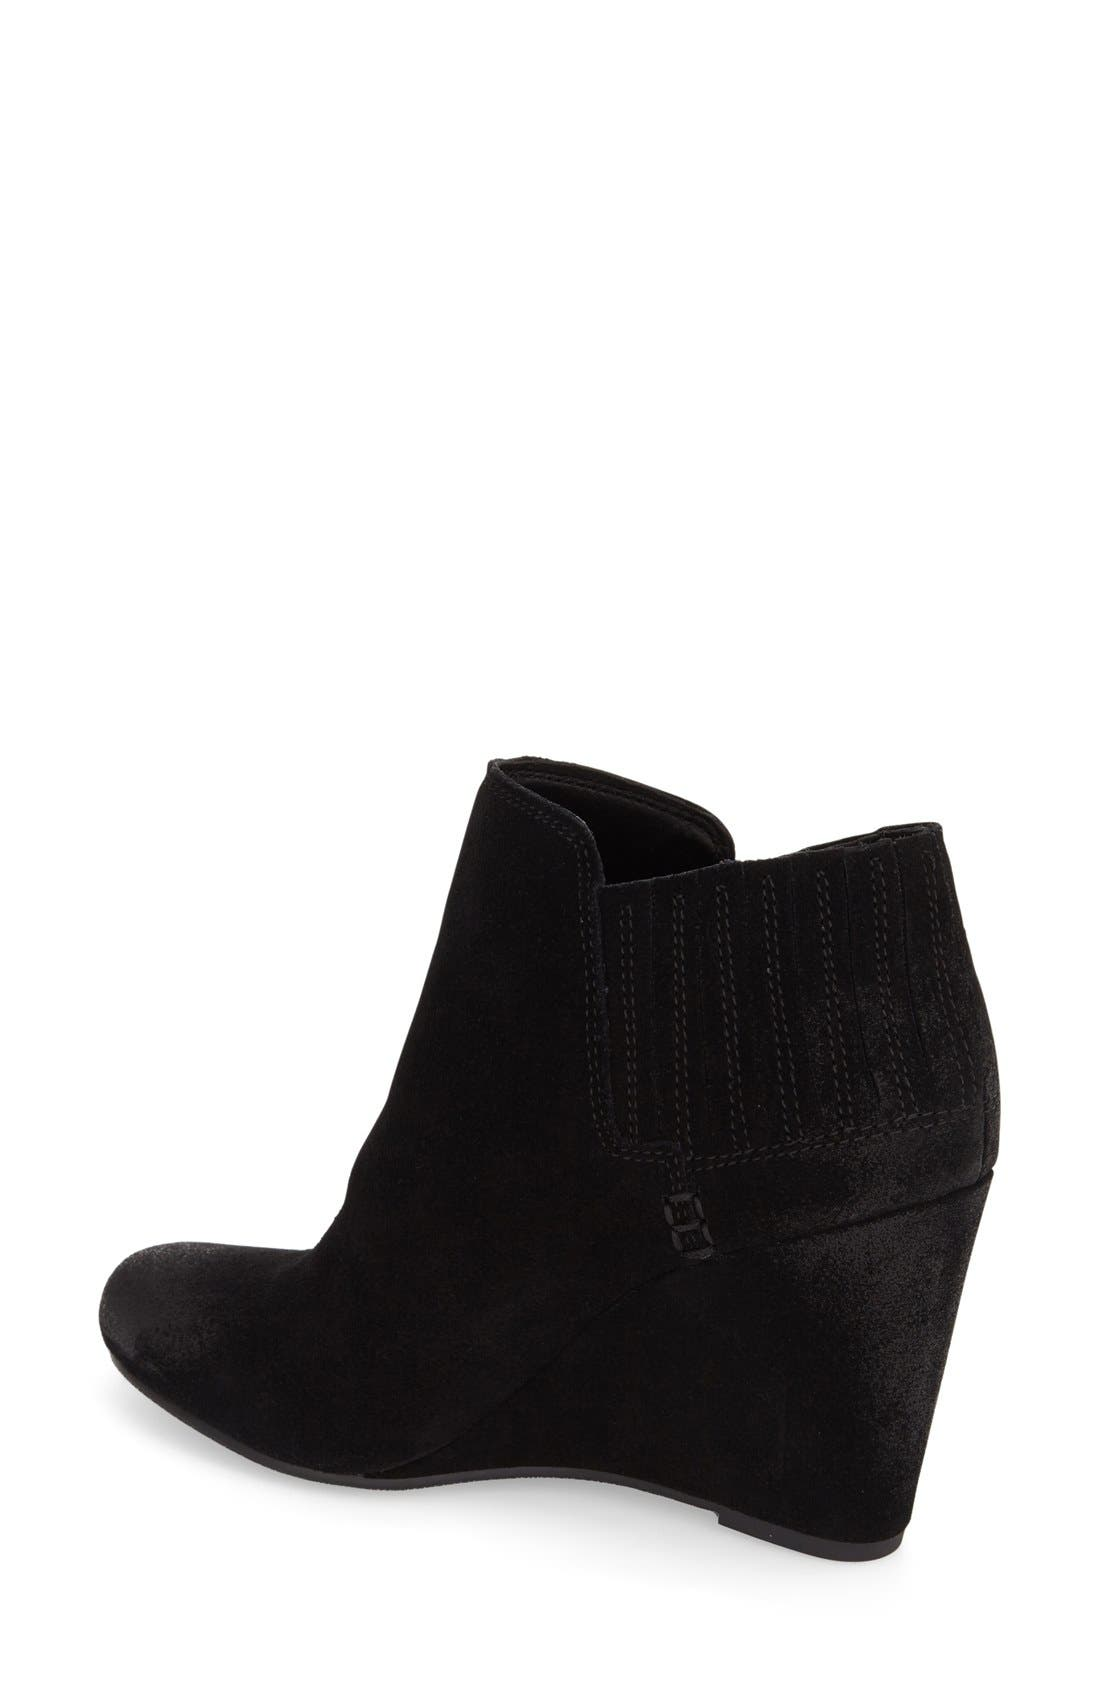 'Gwynn' Wedge Bootie,                             Alternate thumbnail 3, color,                             001